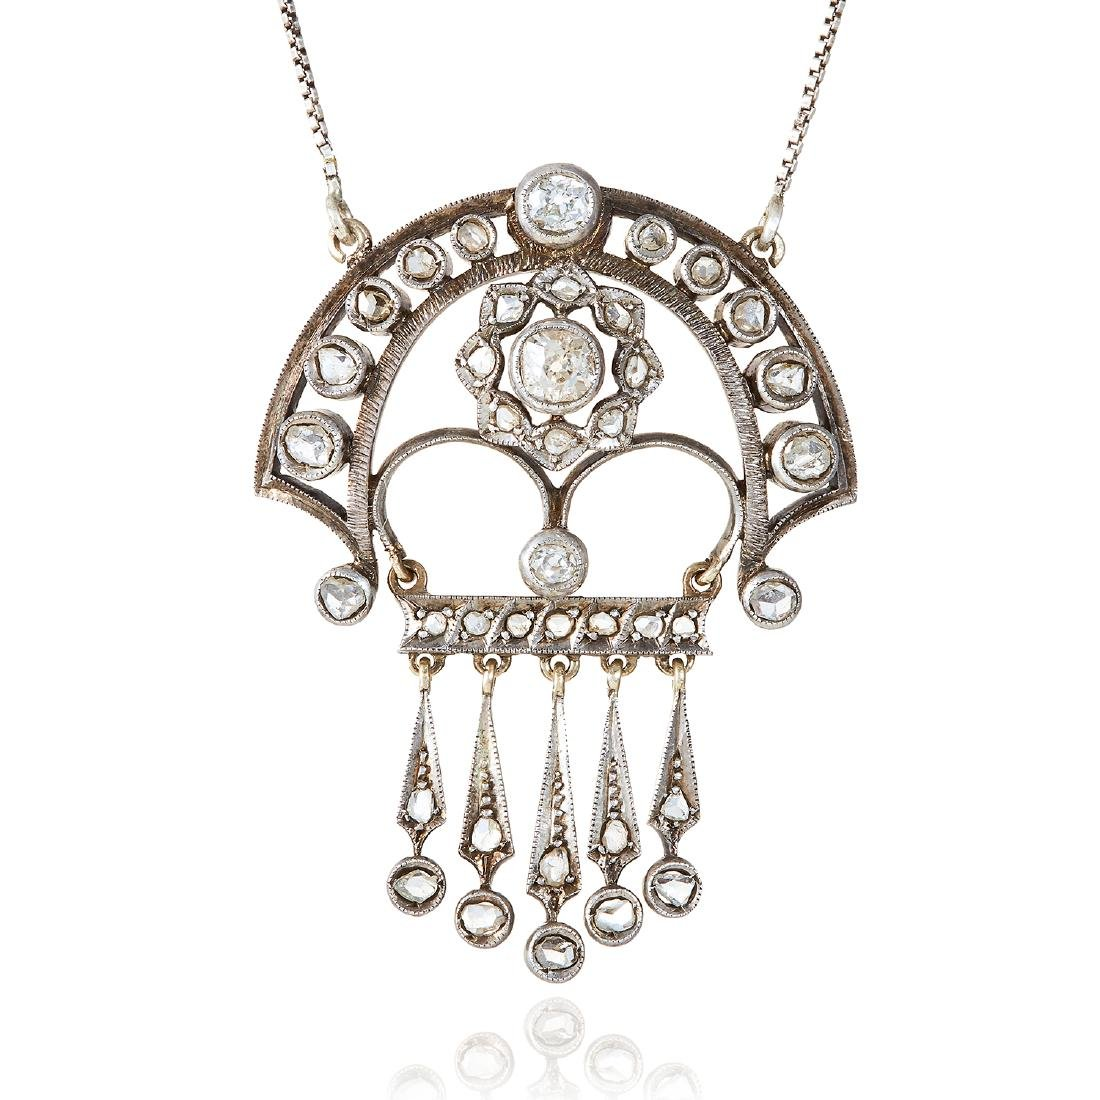 AN ANTIQUE DIAMOND PENDANT NECKLACE, EARLY 20TH CENTURY